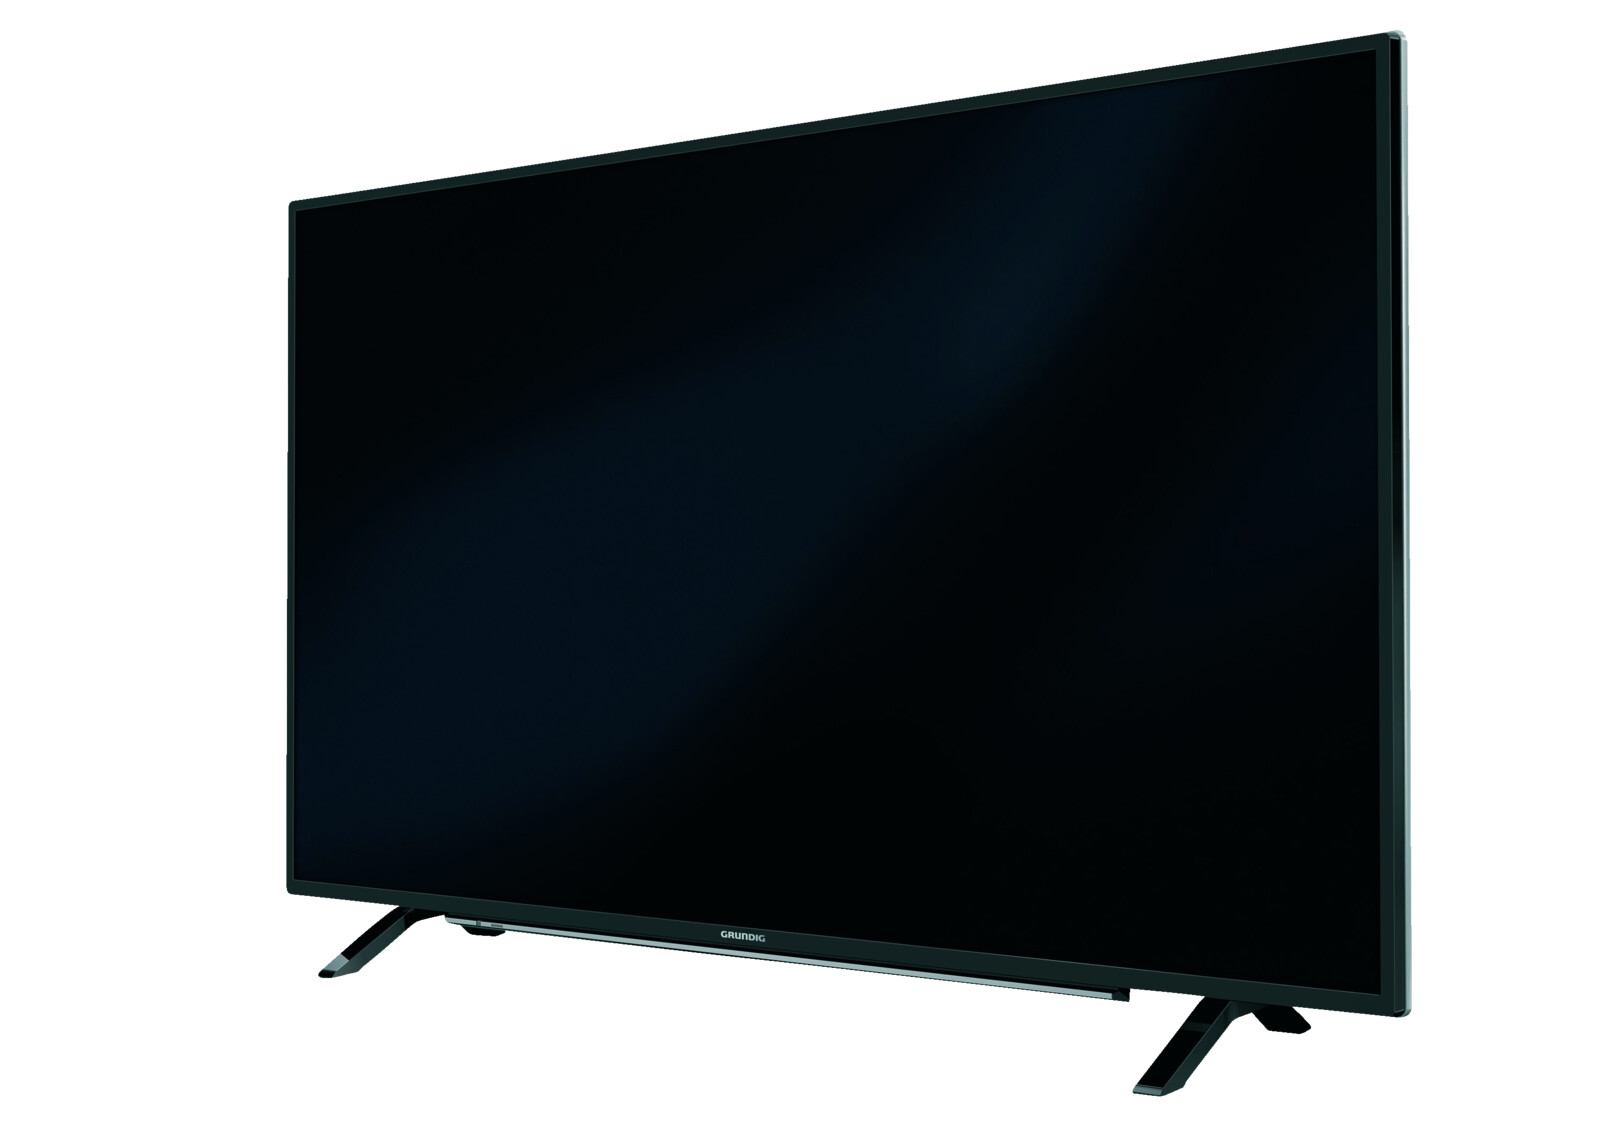 grundig 43 gfb 6722 led tv flat 43 zoll full hd smart. Black Bedroom Furniture Sets. Home Design Ideas